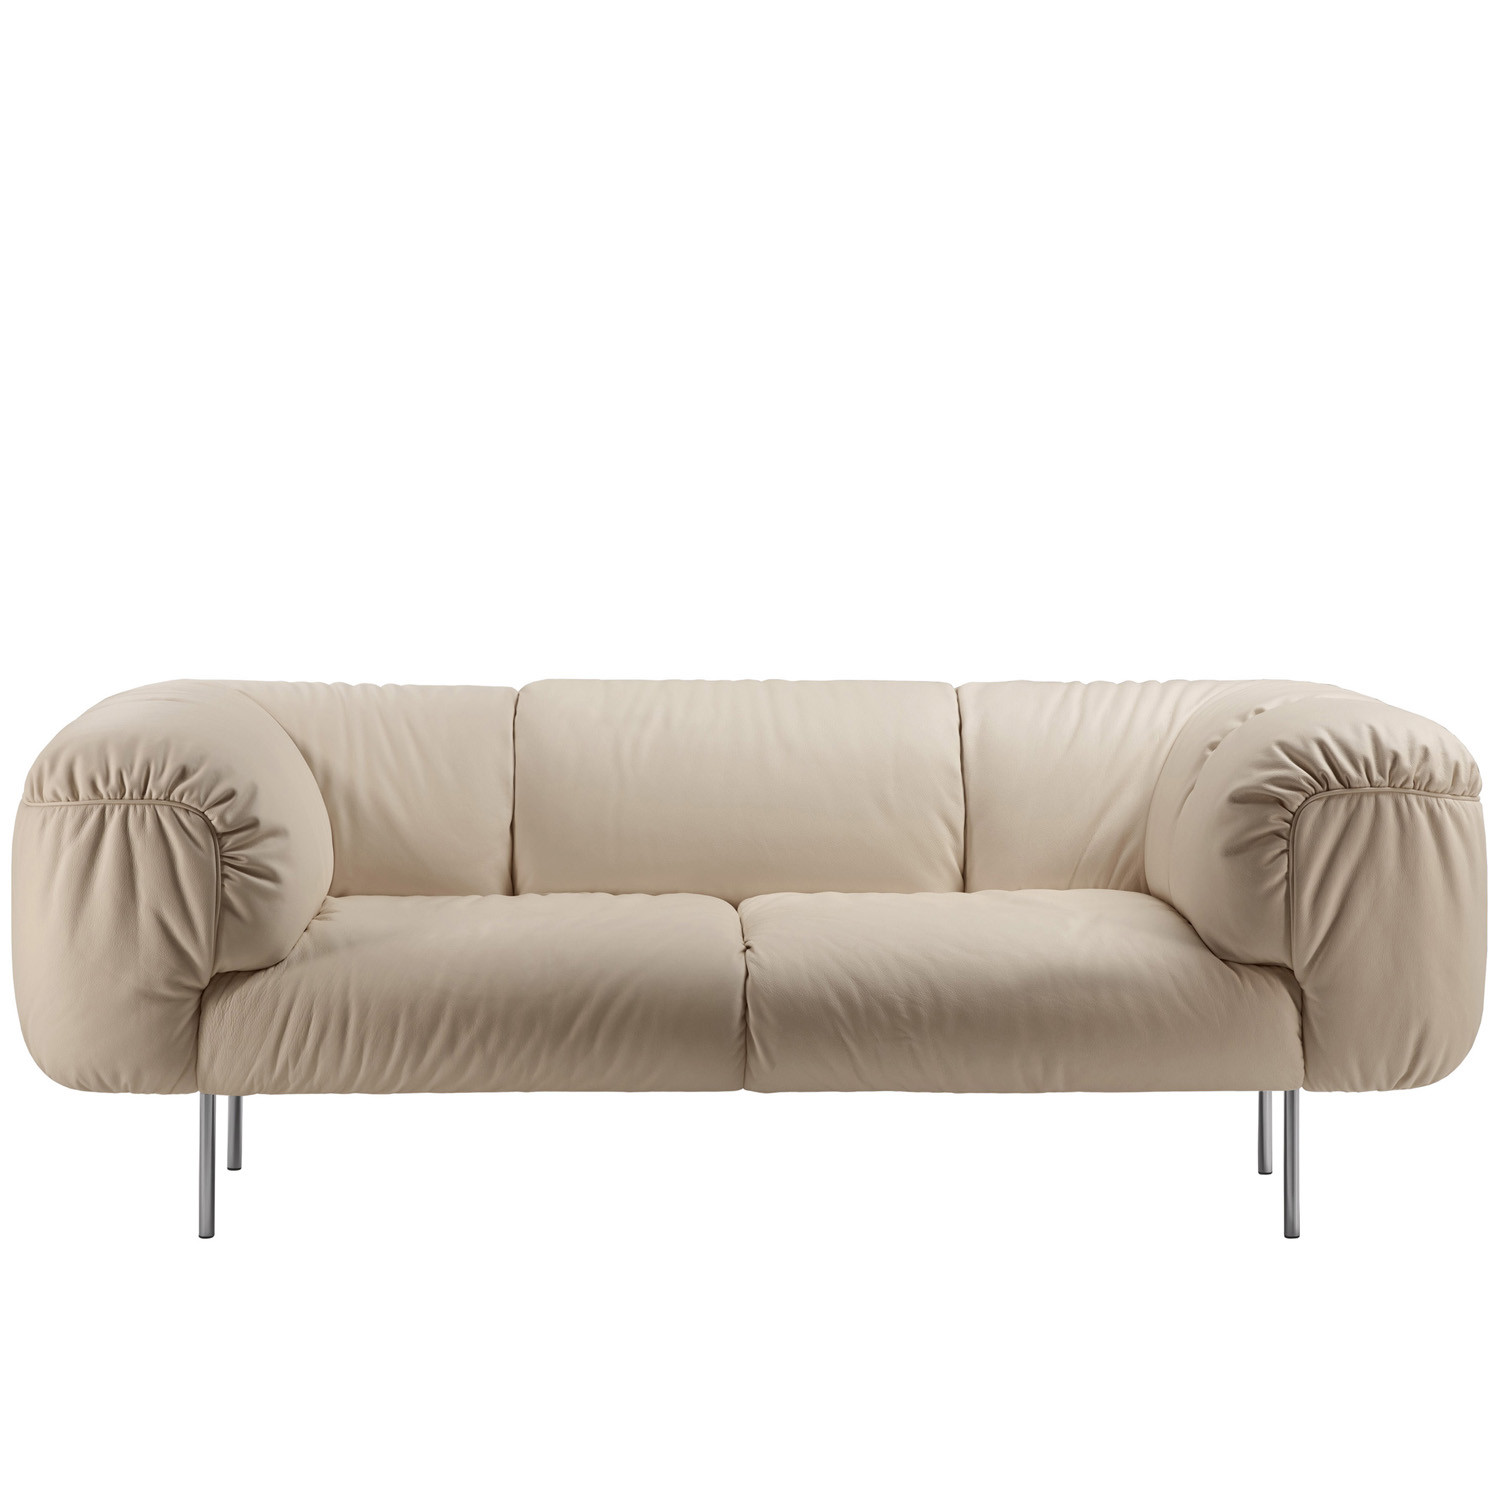 Bebop Sofa 2 Seater